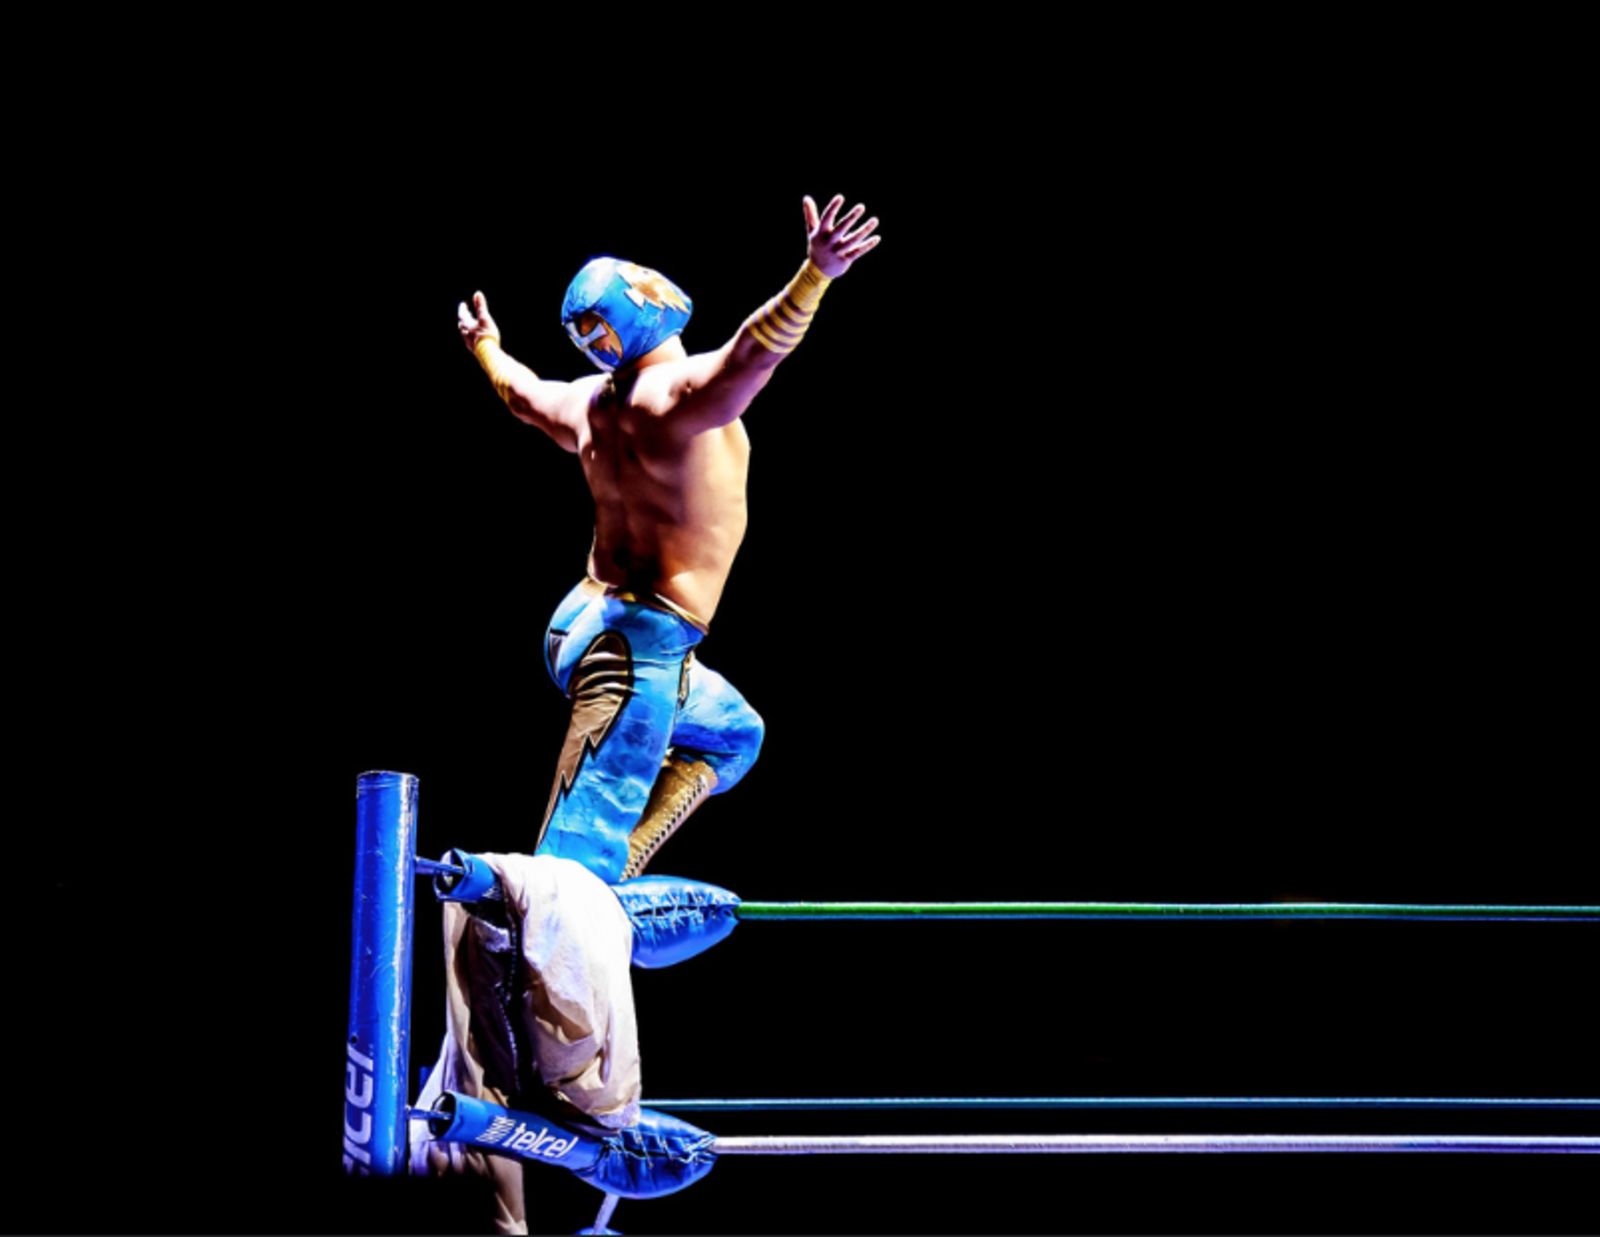 """Lucha Libre  """"The lucha libre (professional wrestling) at the Arena Mexico is an event not to be missed on a visit to Mexico City if you happen to be here on a Friday night. A mix between a sporting event and a circus performance, it's the ideal place to get all your work week's stress out by yelling at the rudos (bad guys) or the tecnicos (good guys), and be amused by the interaction of the crowd with every member in the ring."""""""